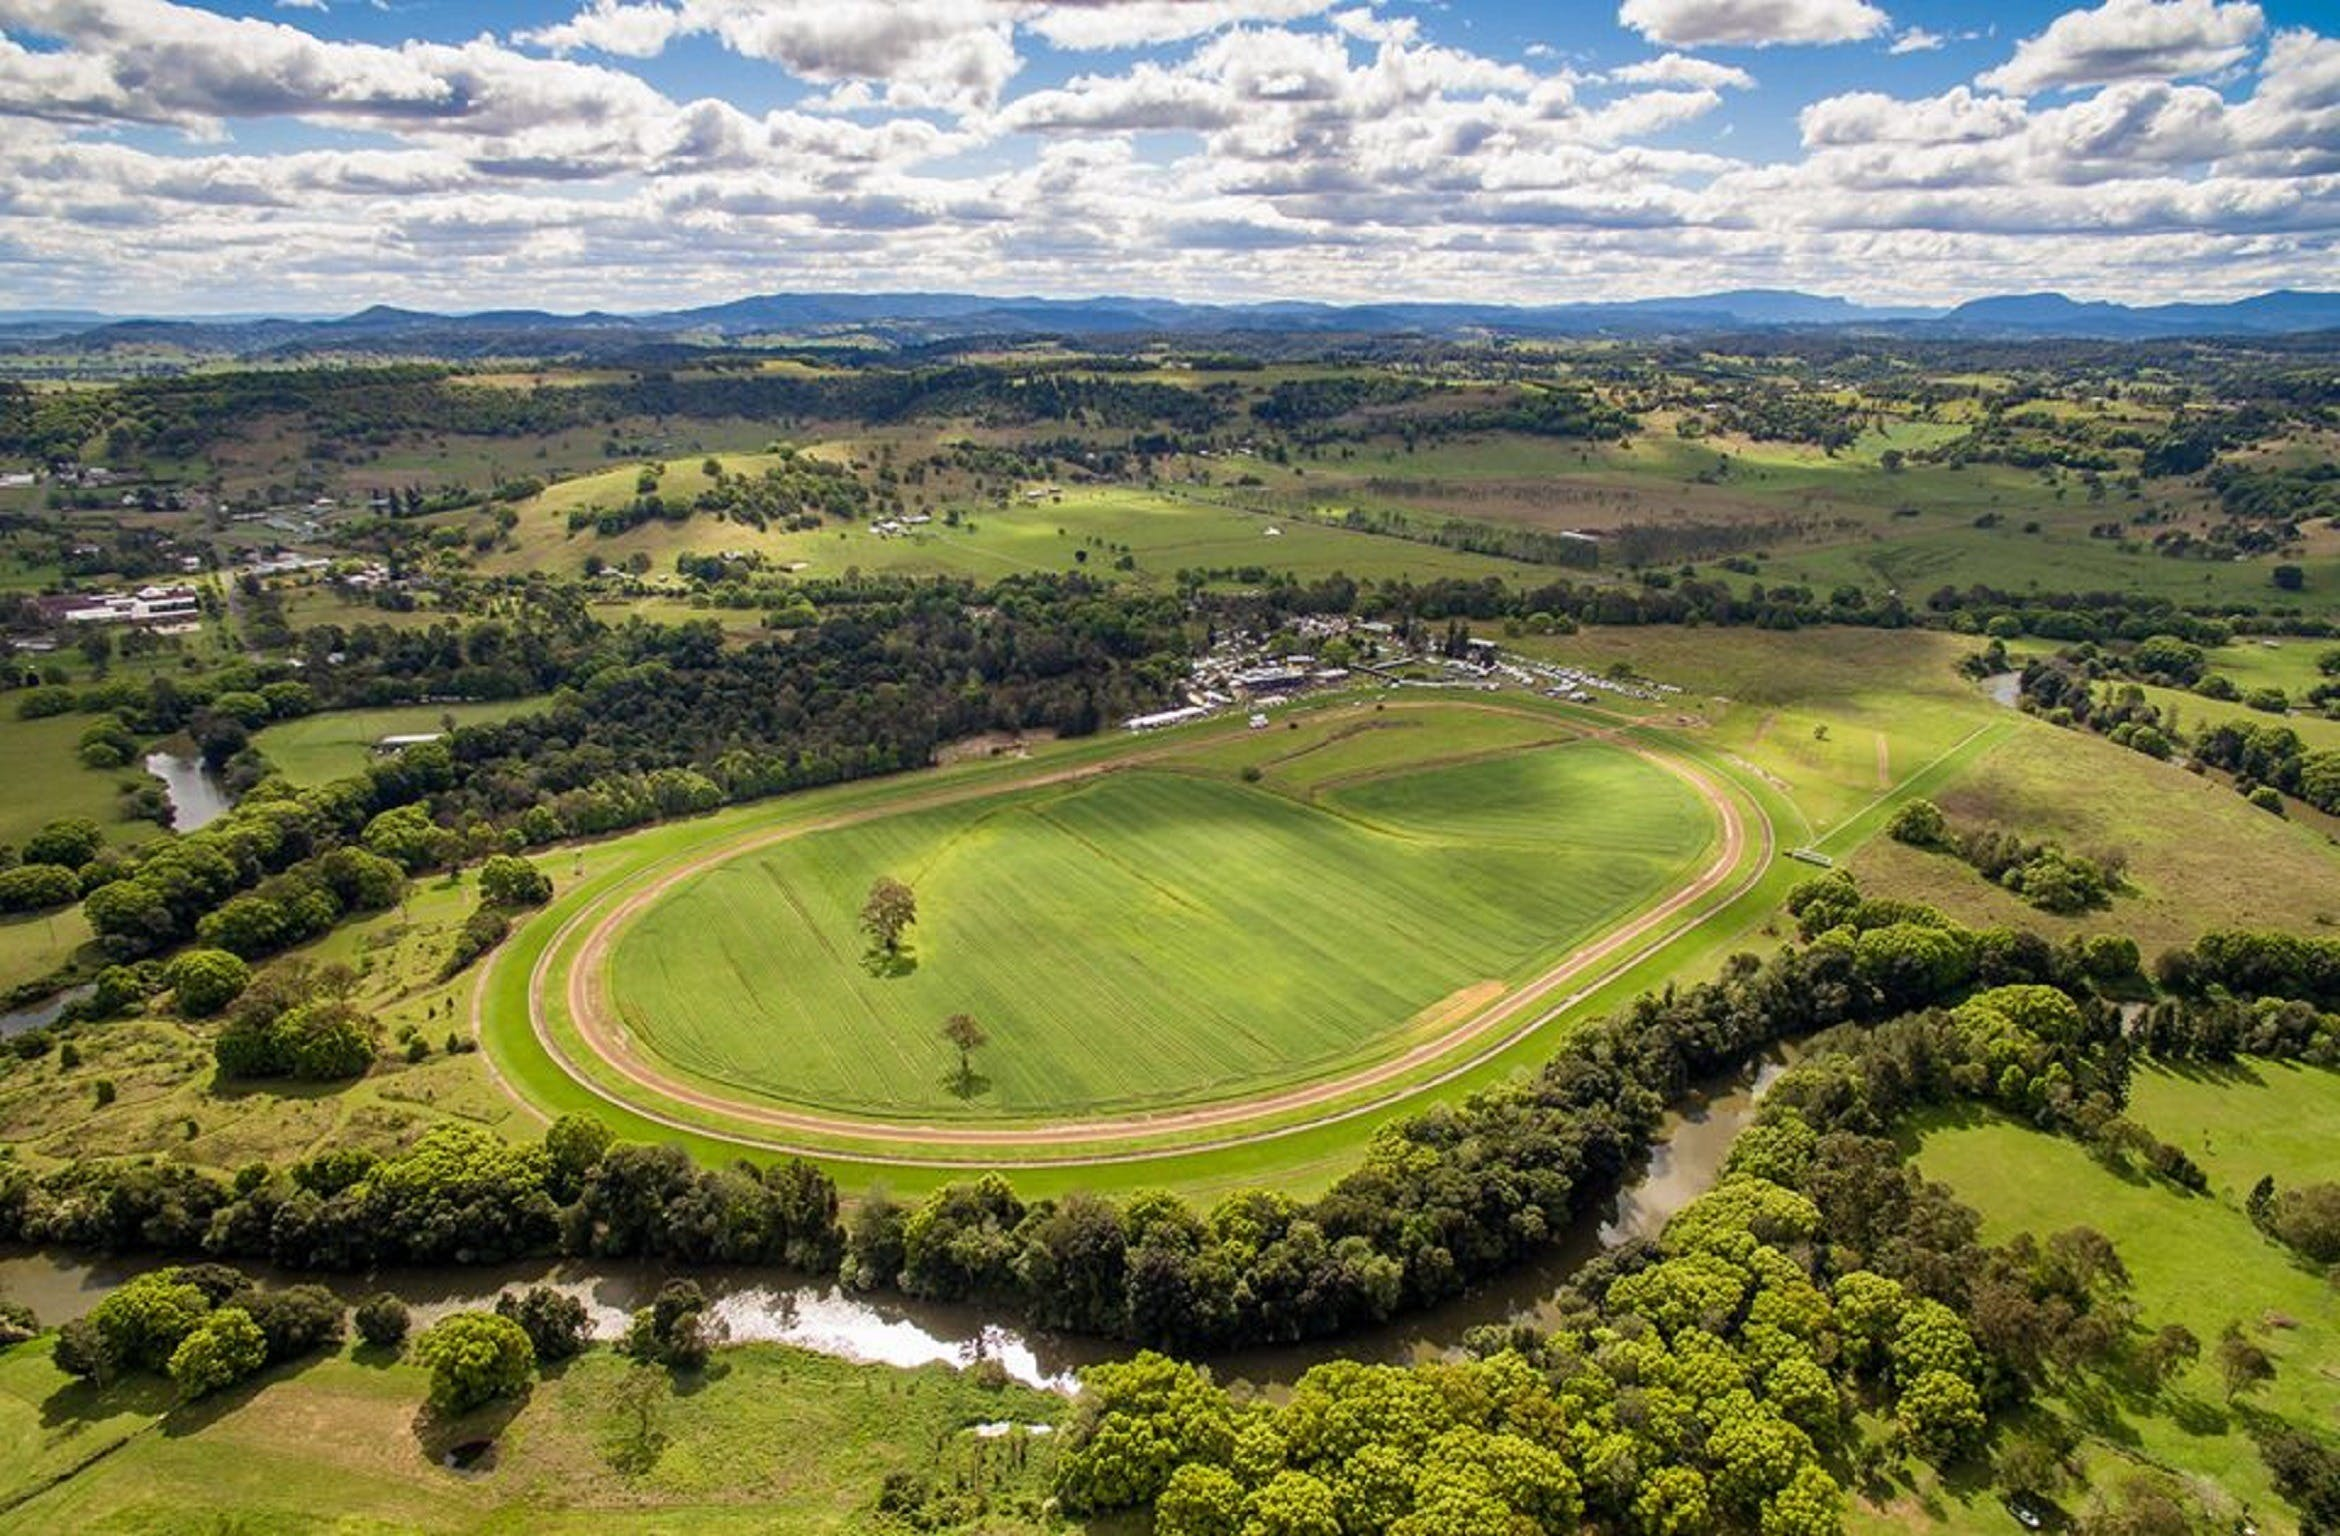 The OBrien Electrical and Plumbing Lismore Cup - Tourism Bookings WA